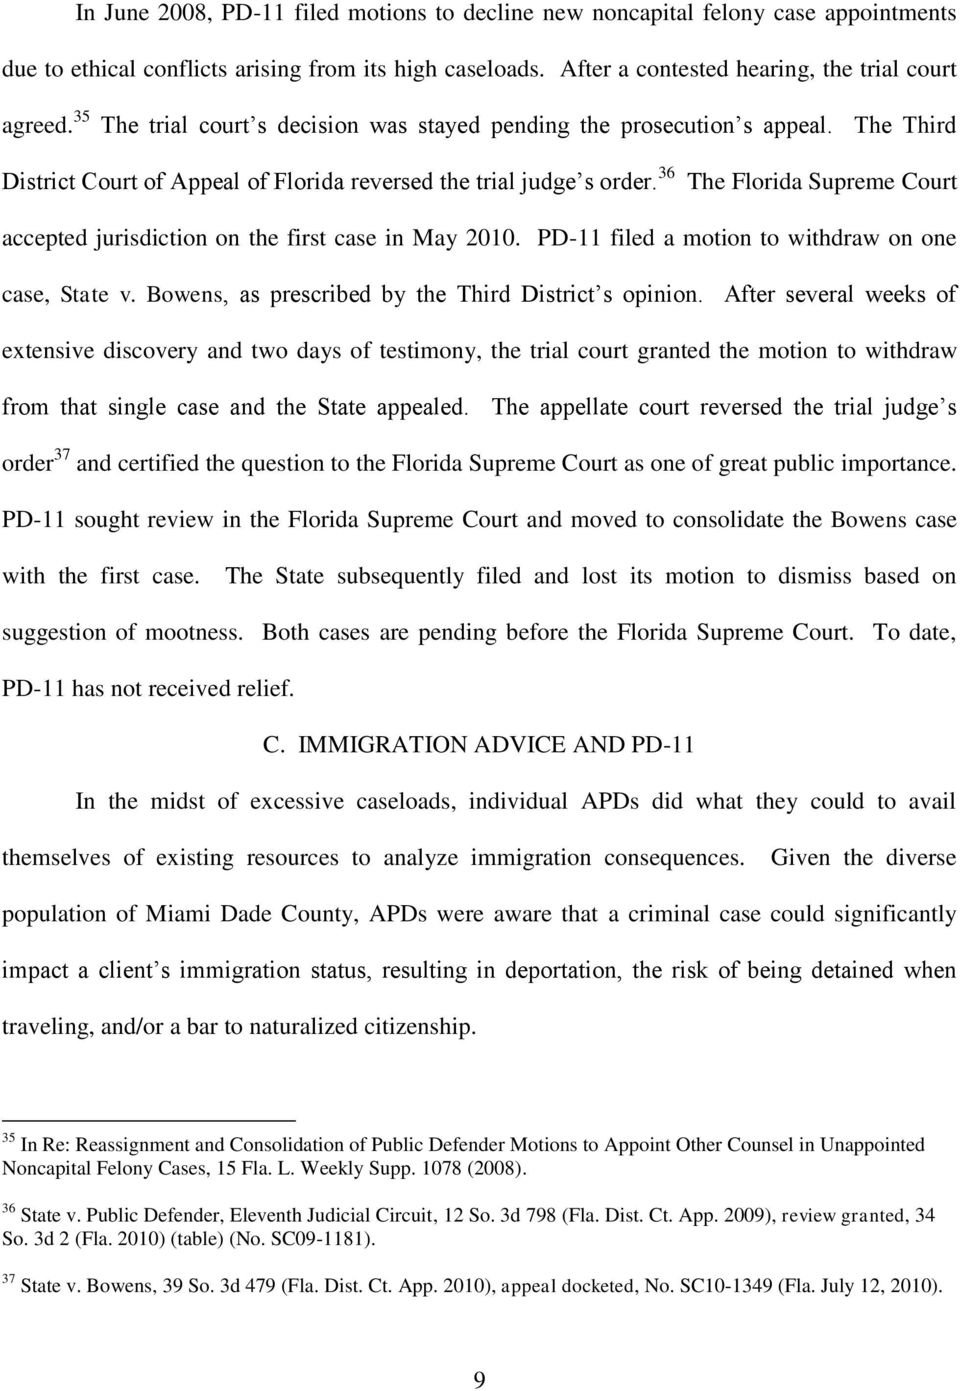 36 The Florida Supreme Court accepted jurisdiction on the first case in May 2010. PD-11 filed a motion to withdraw on one case, State v. Bowens, as prescribed by the Third District s opinion.